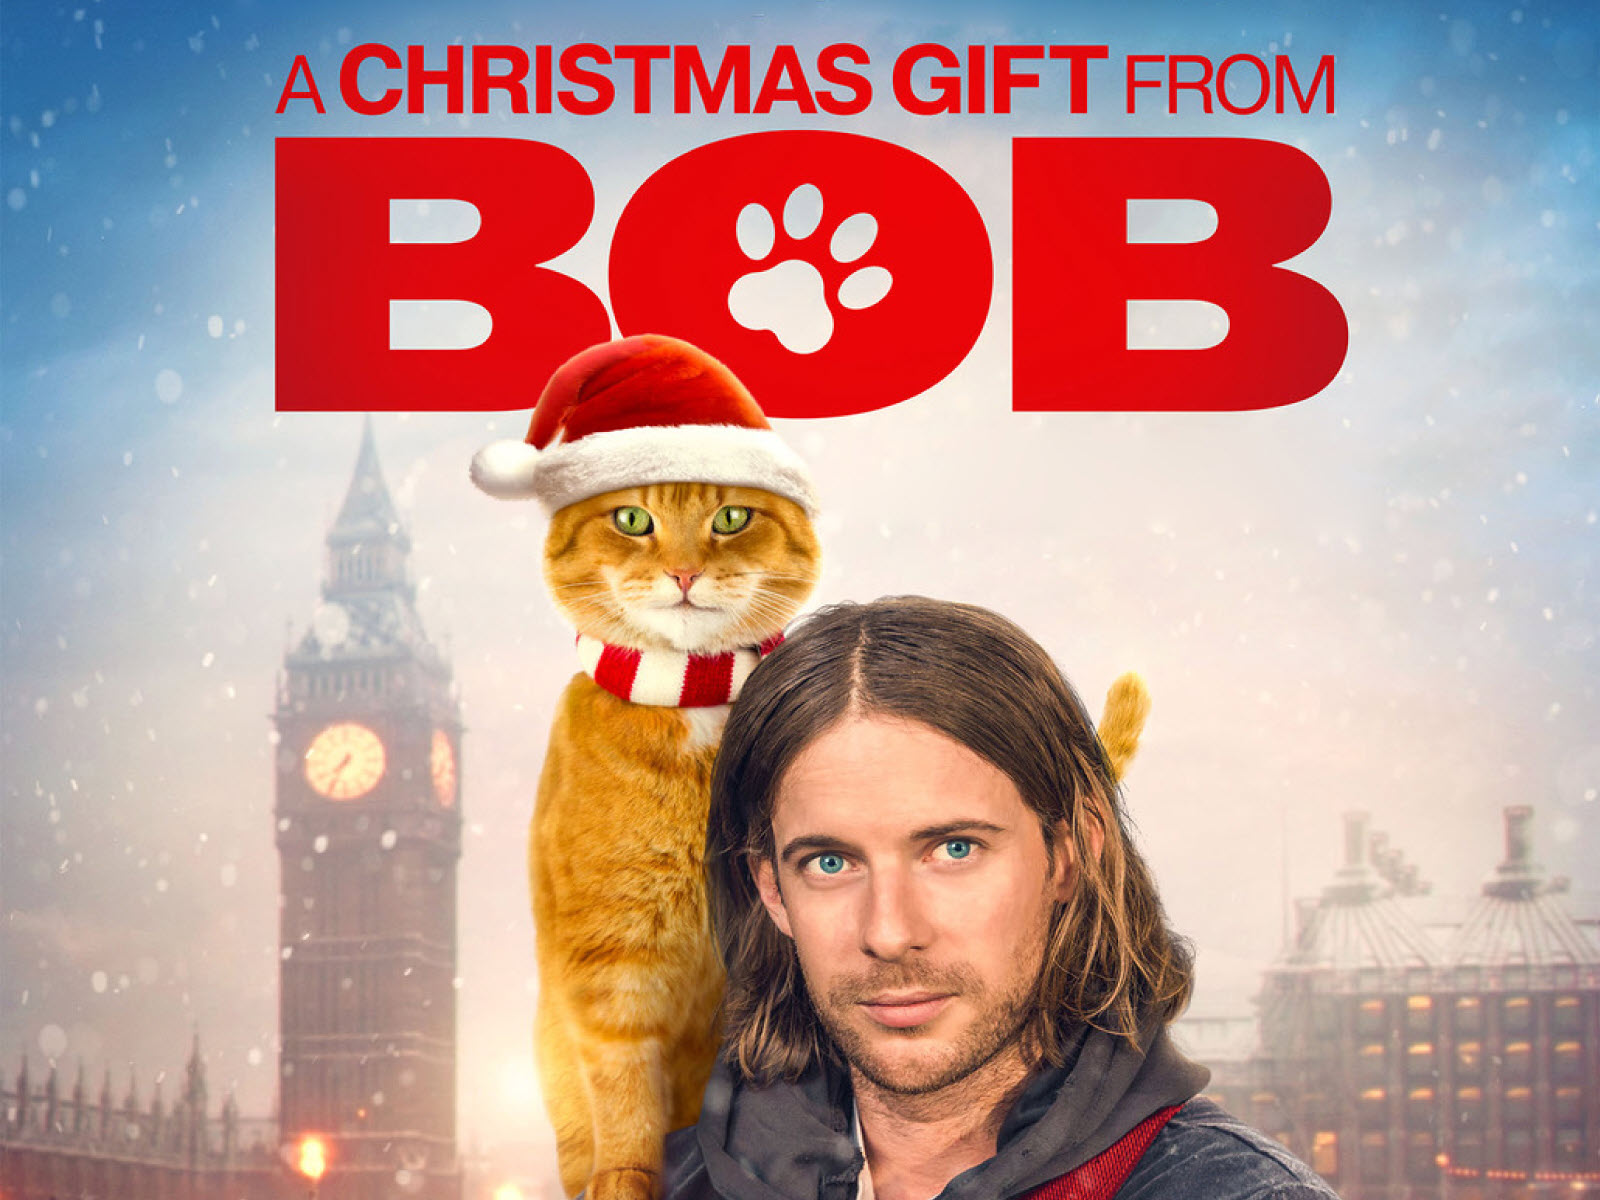 This drama sequel to the biographical film adaptation is the feel-good film of the festive season...